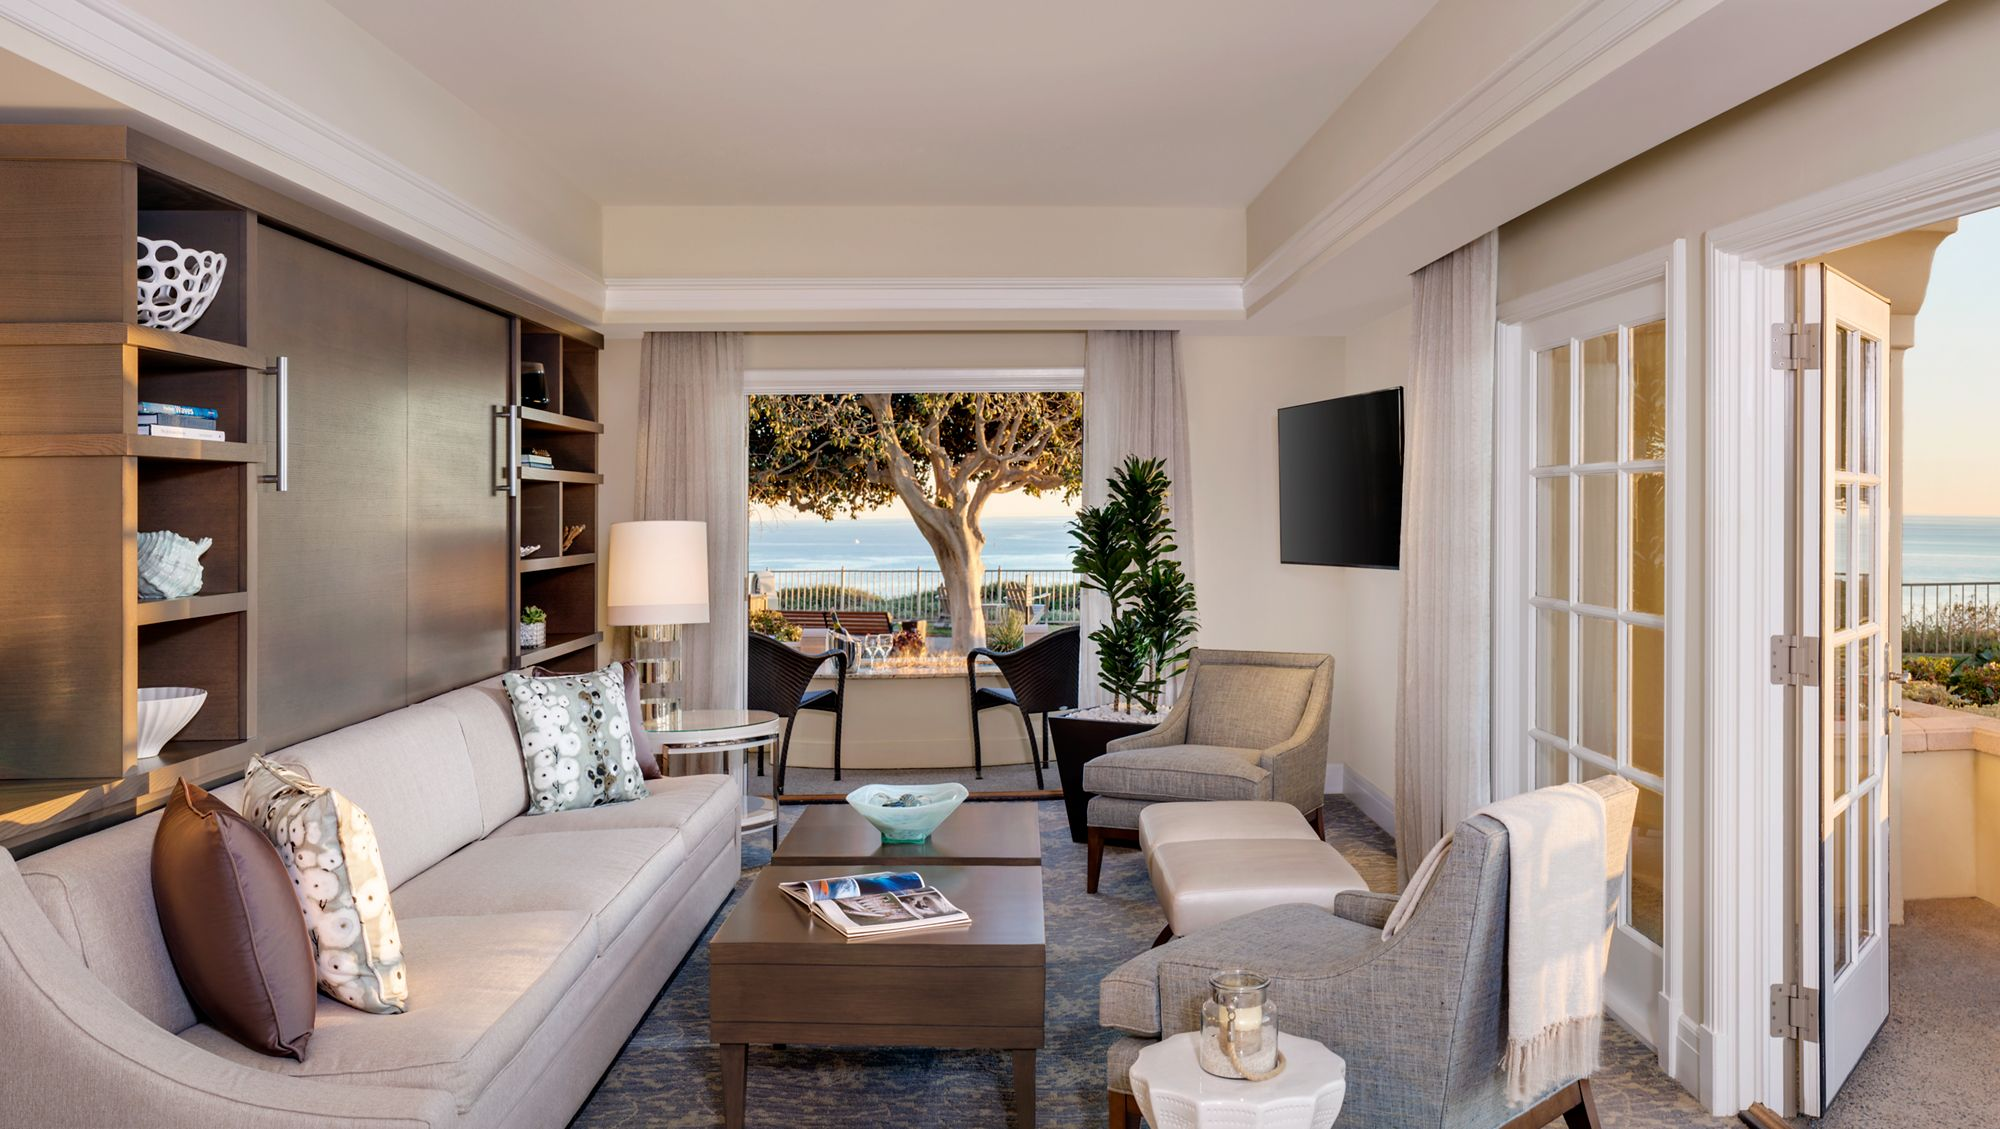 A living room leads to outdoor, ocean-view spaces